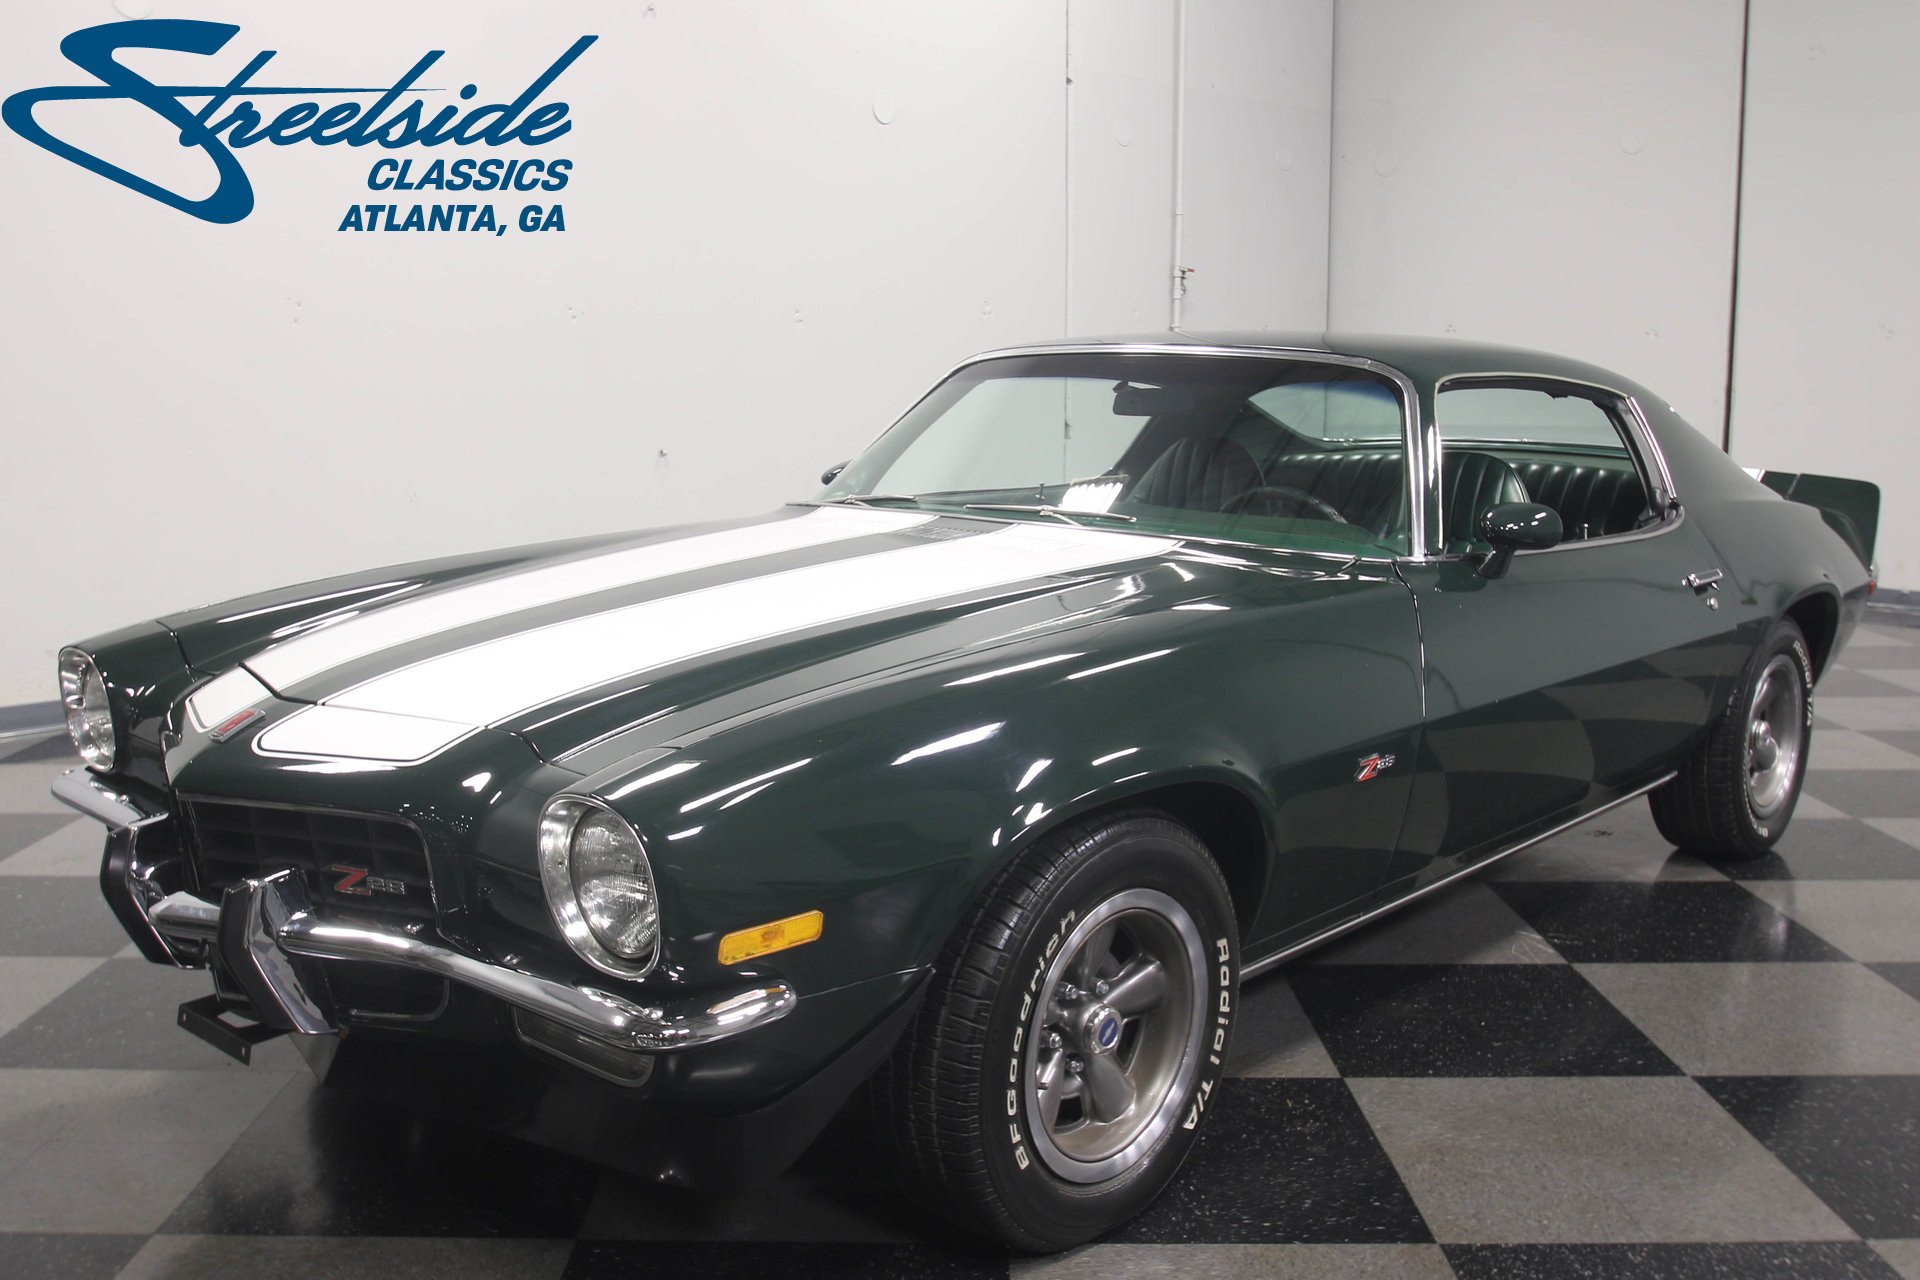 1973 Chevrolet Camaro Streetside Classics The Nation S Trusted Classic Car Consignment Dealer